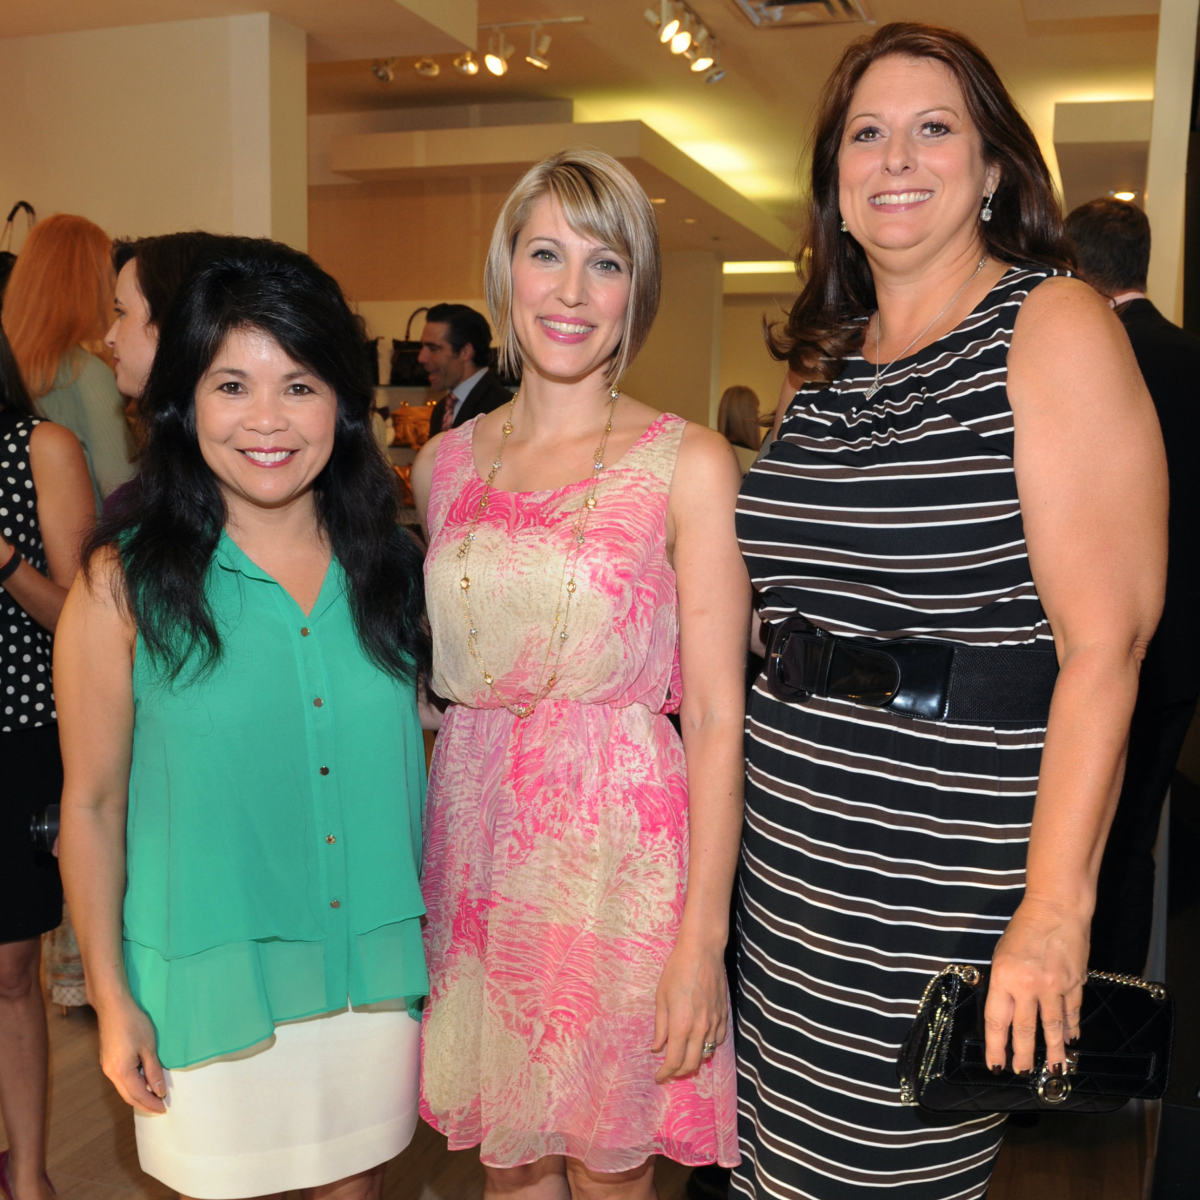 Dynamics 13 By Michelle Gibson: Mary Kay Foundation Fans Think Pink At Suits For Shelters